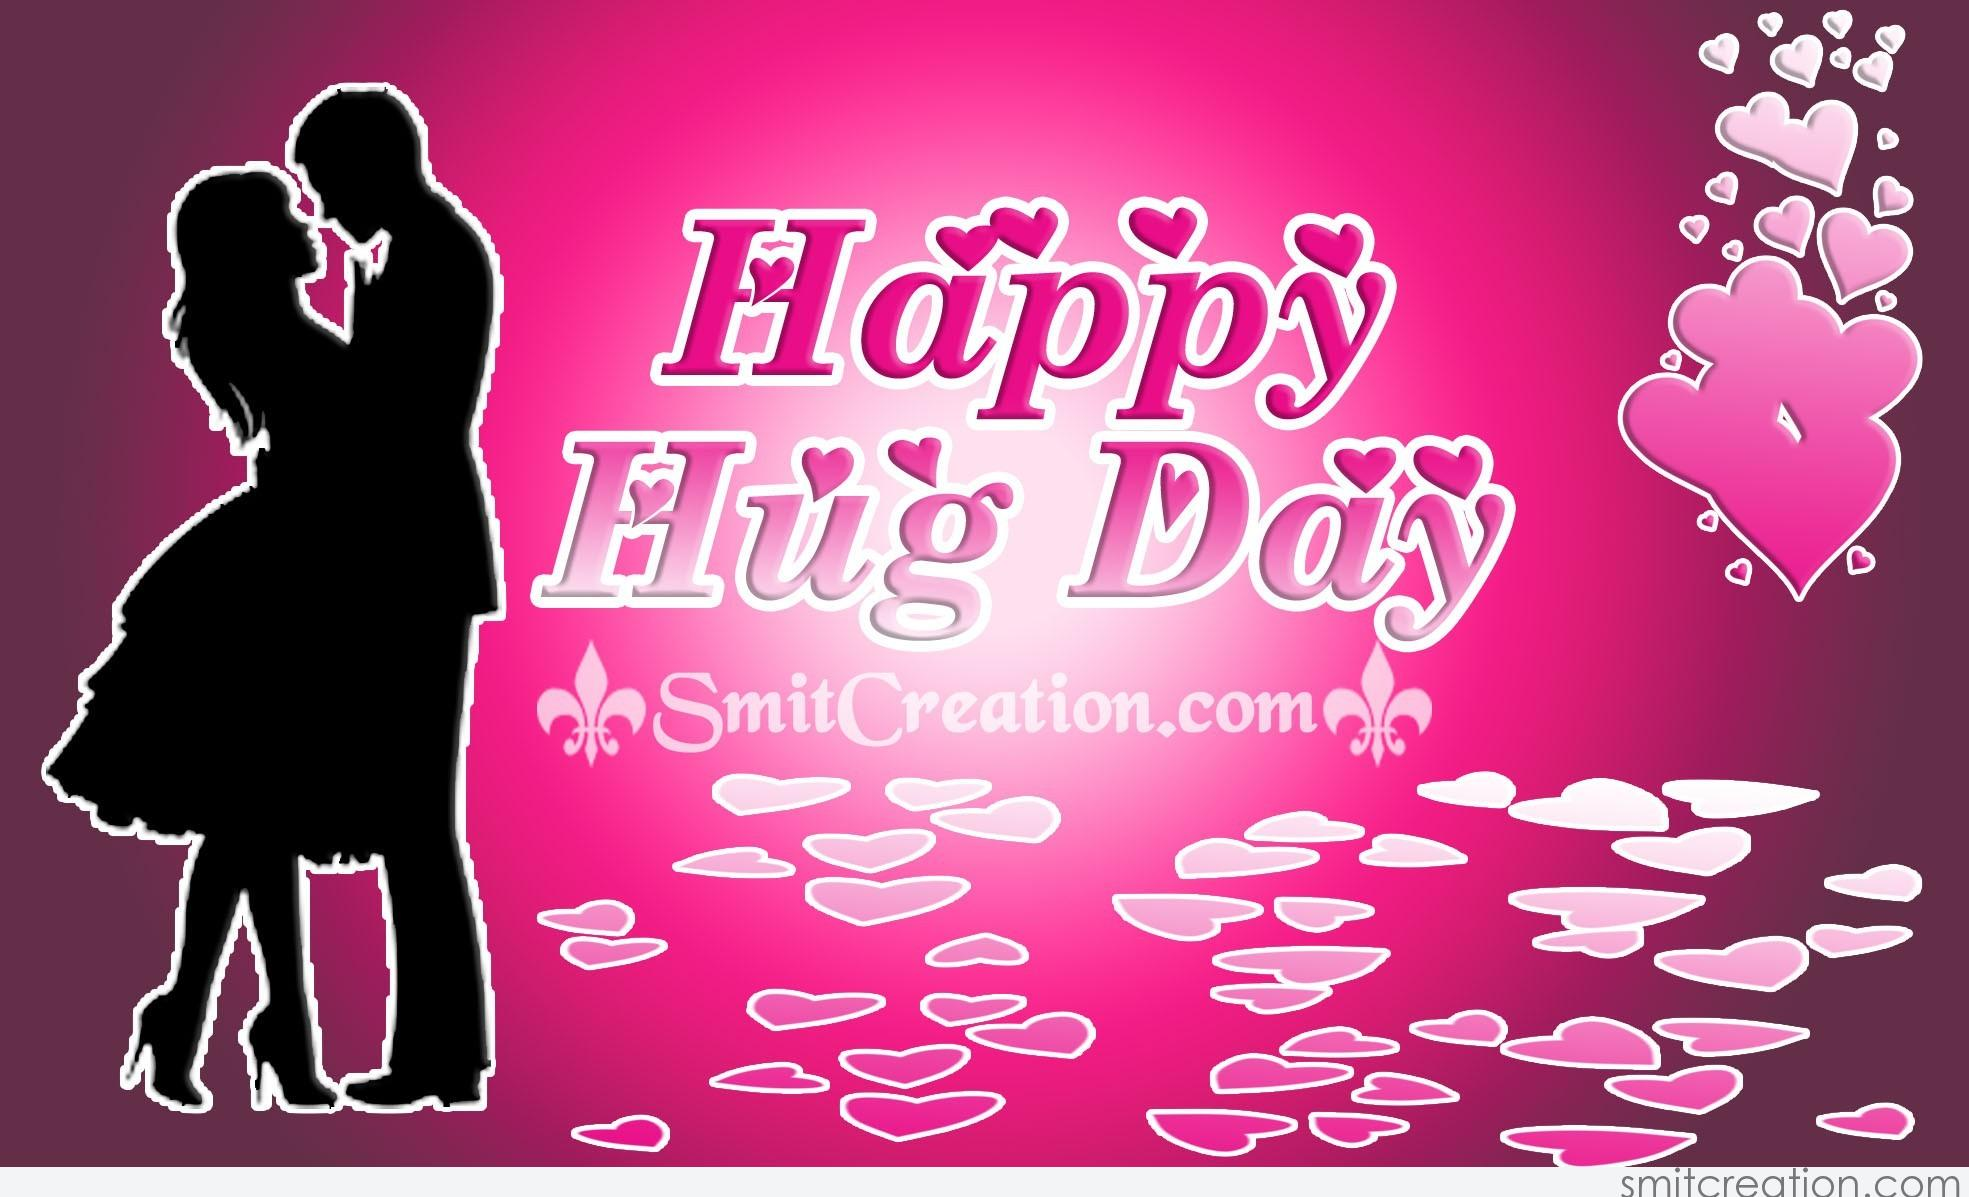 Hug Day Pictures And Graphics Smitcreation Page 3